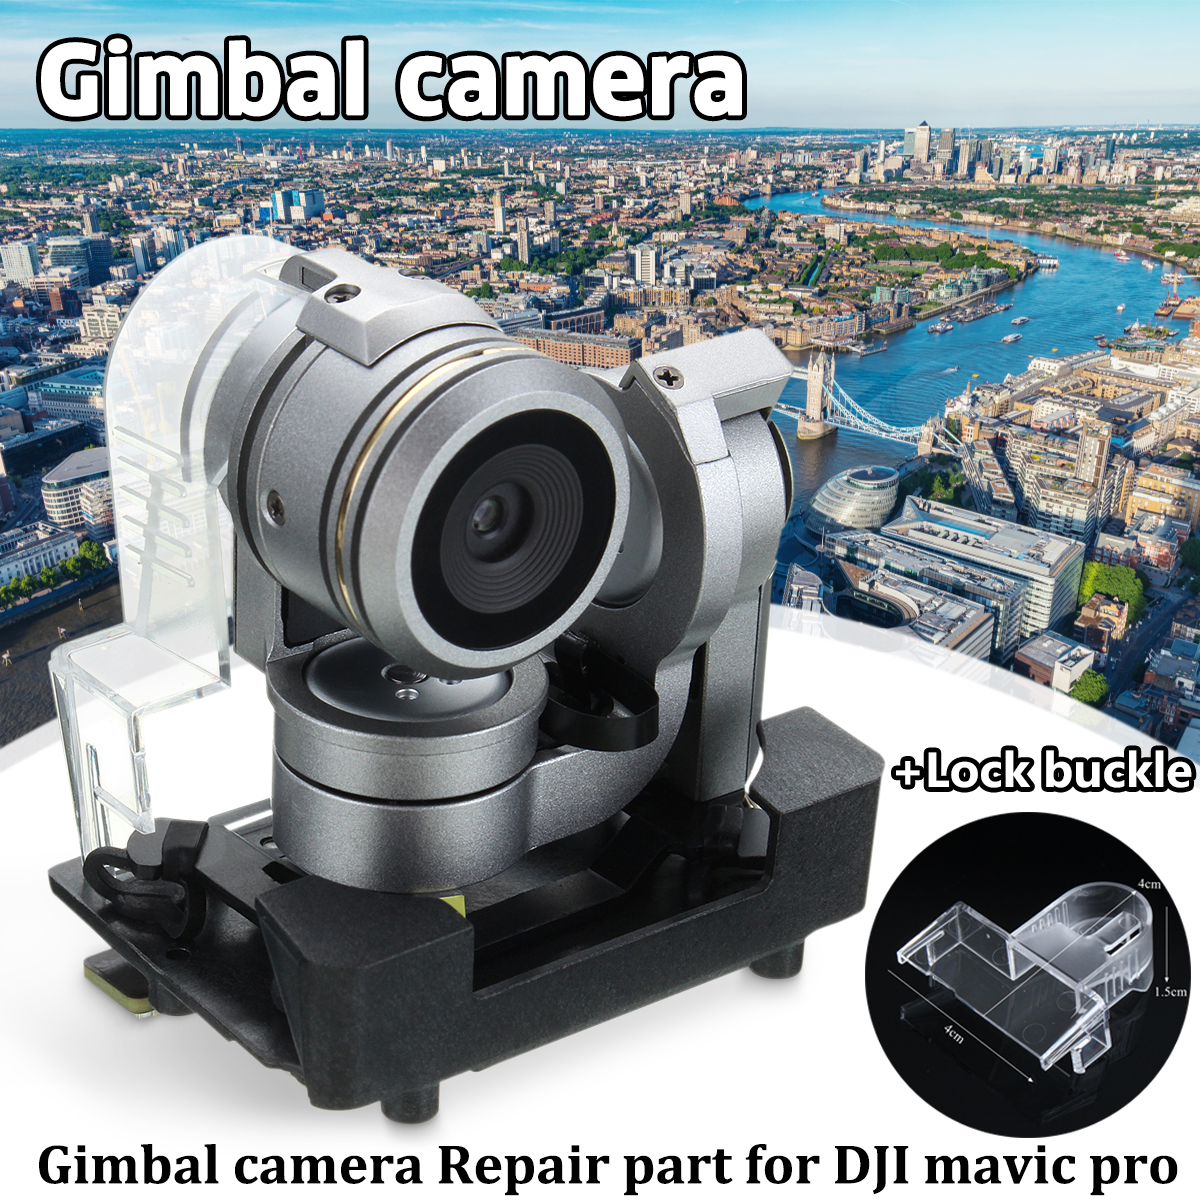 4K Camera Gimbal for Original DJI Mavic Pro Drone Spare Parts FPV RC Quadcopter Replacement Accessories+Holder lock buckle квадрокоптер набор dji mavic pro 4k quadcopter бпла чёрный